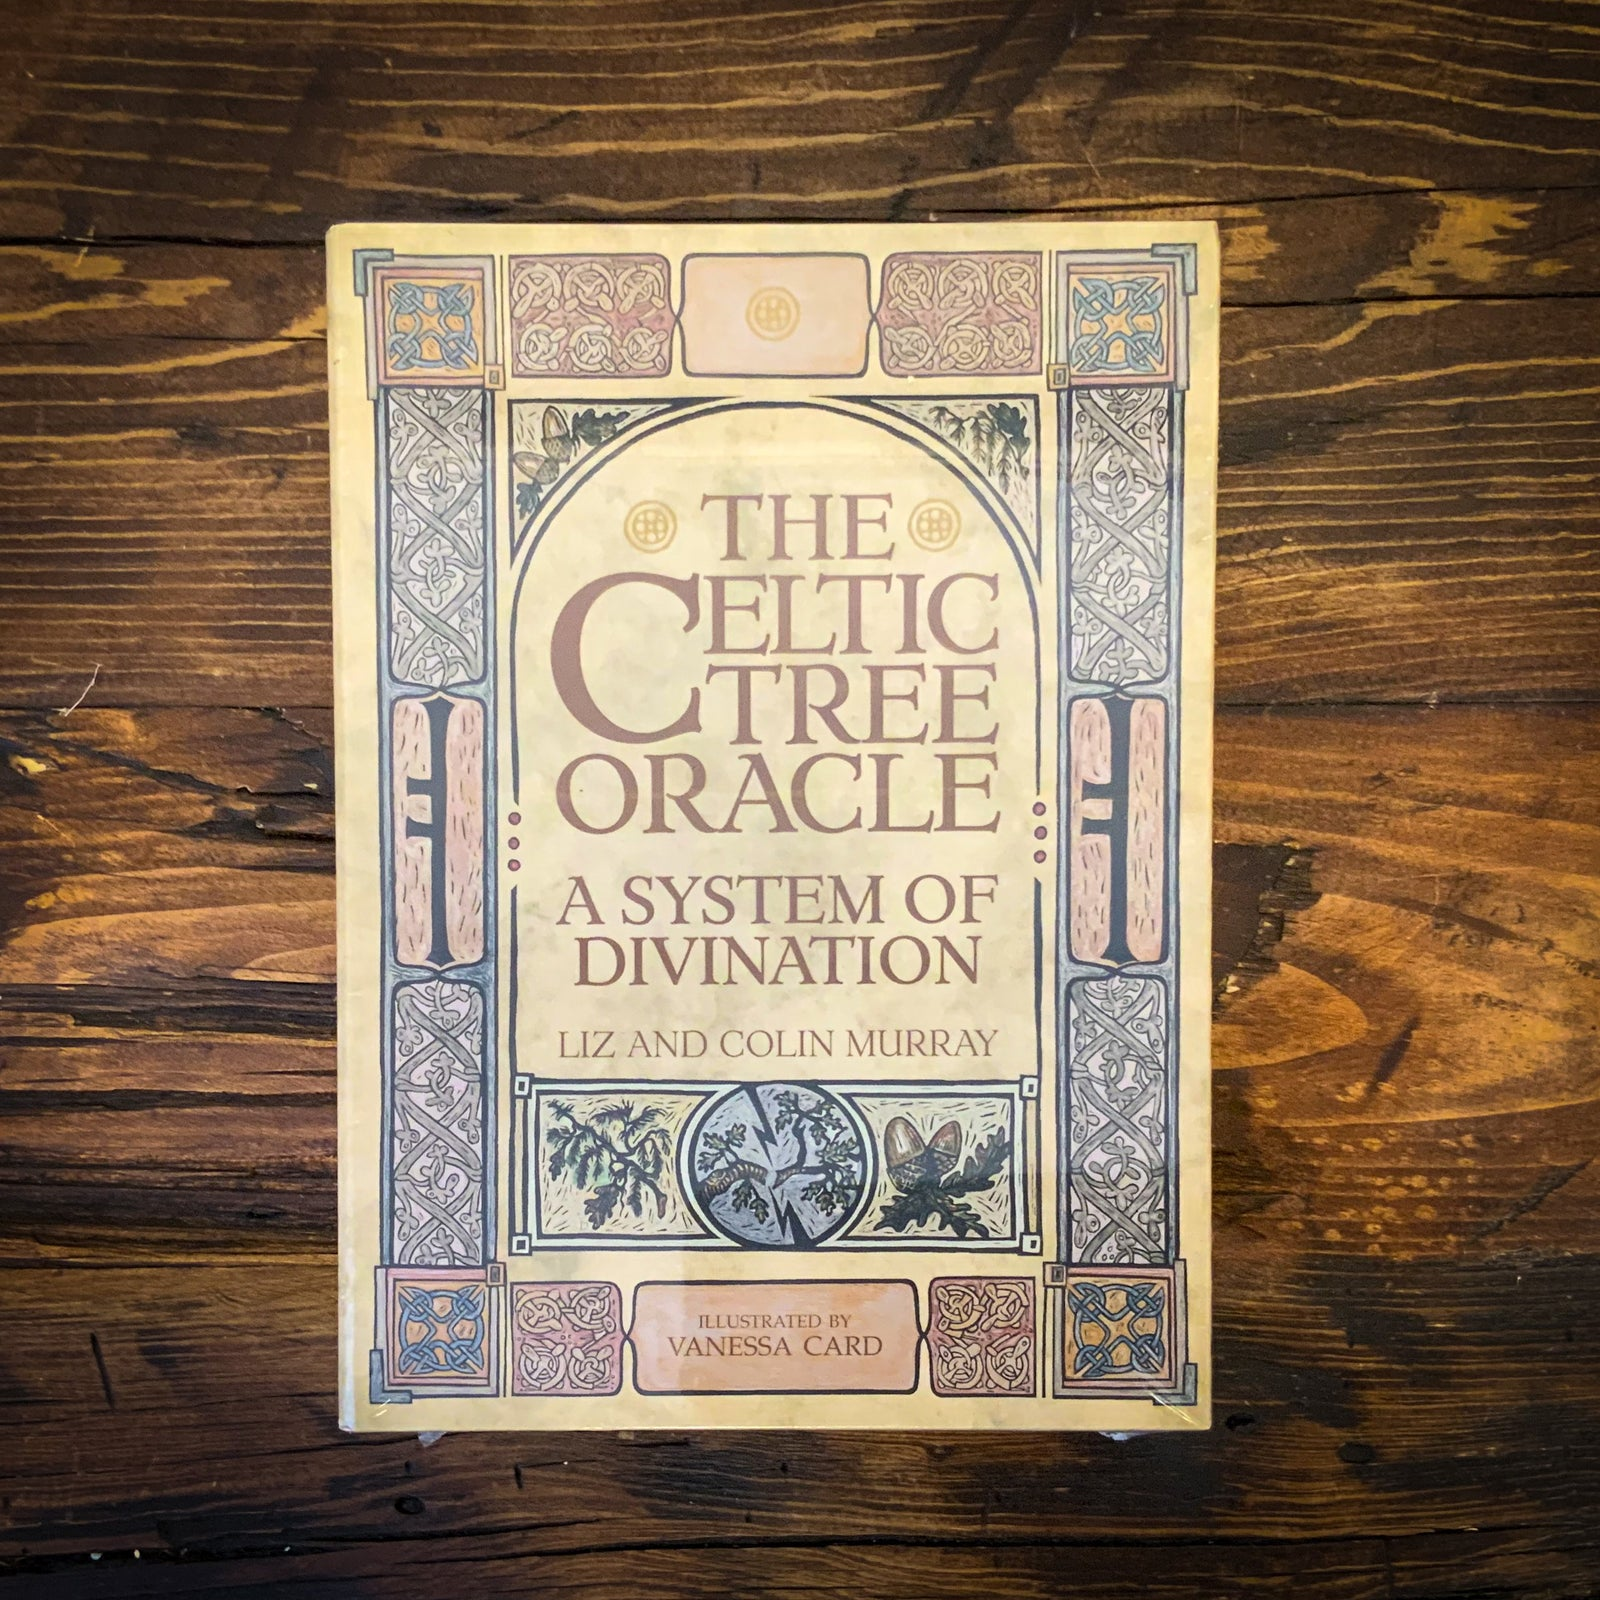 The Celtic Tree Oracle - A System of Divination